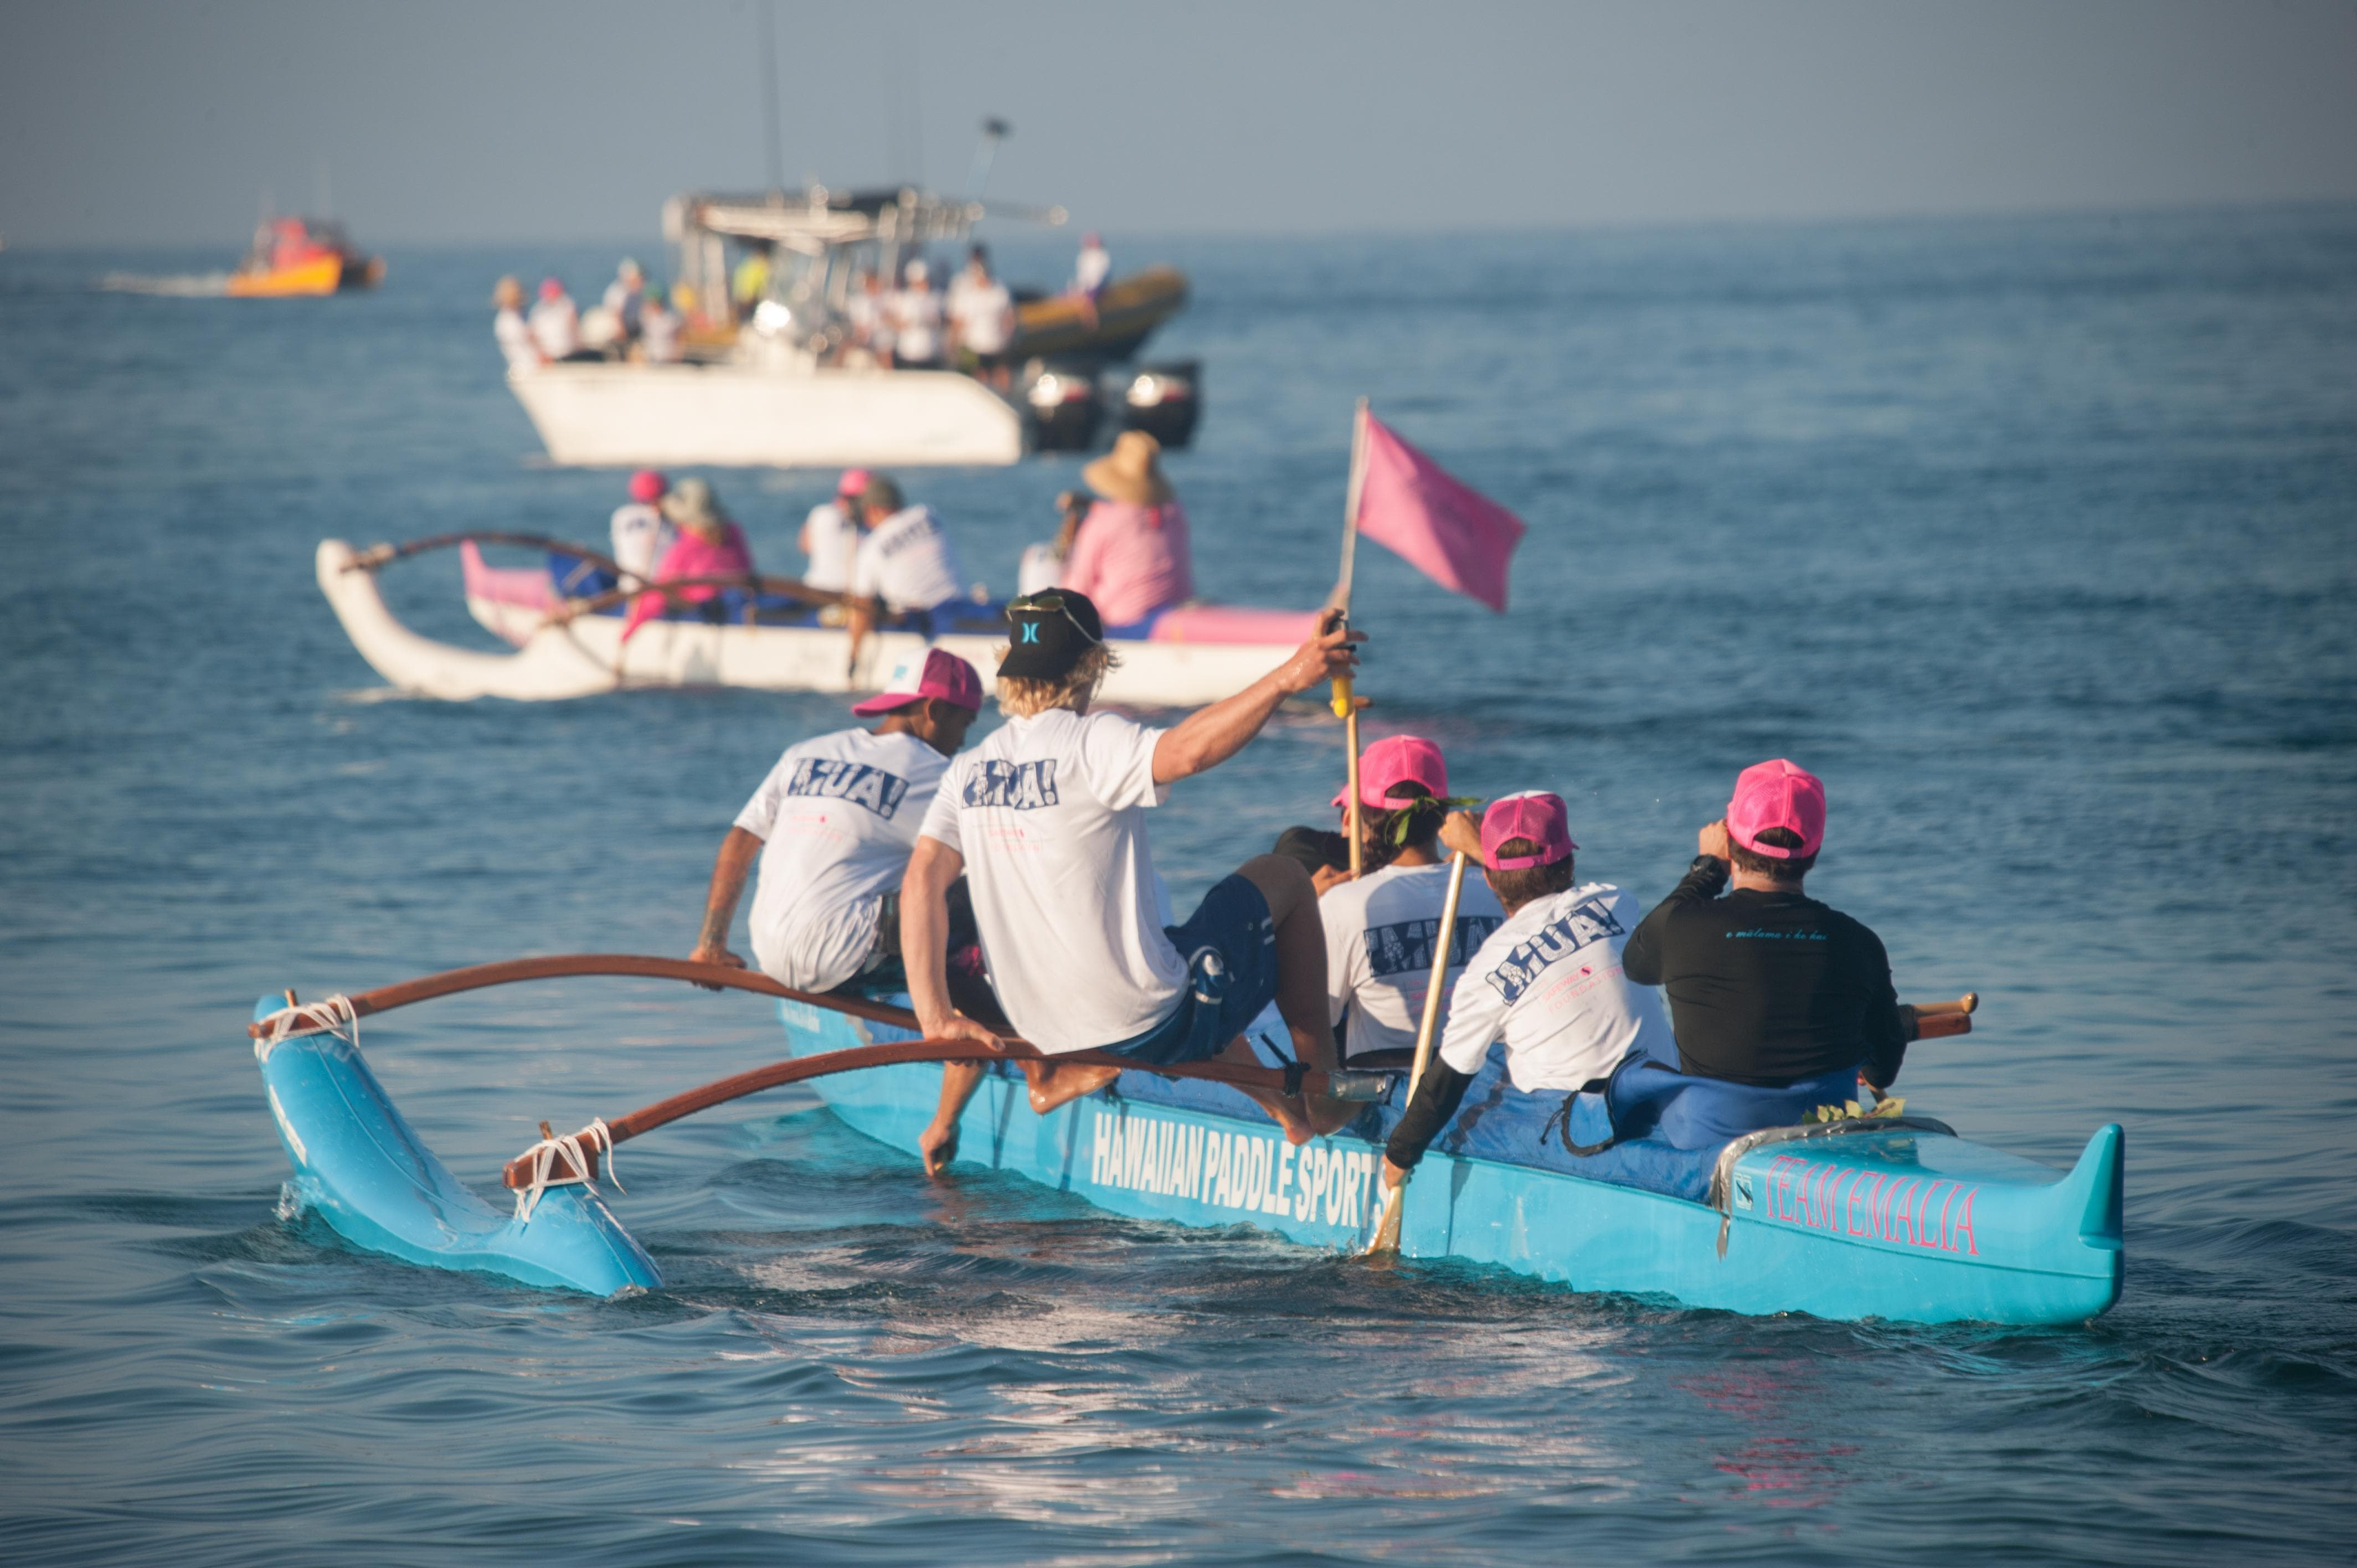 HPS guides paddle 36 miles round trip from Maui to Lanai to raise money for Pacific Cancer Foundation